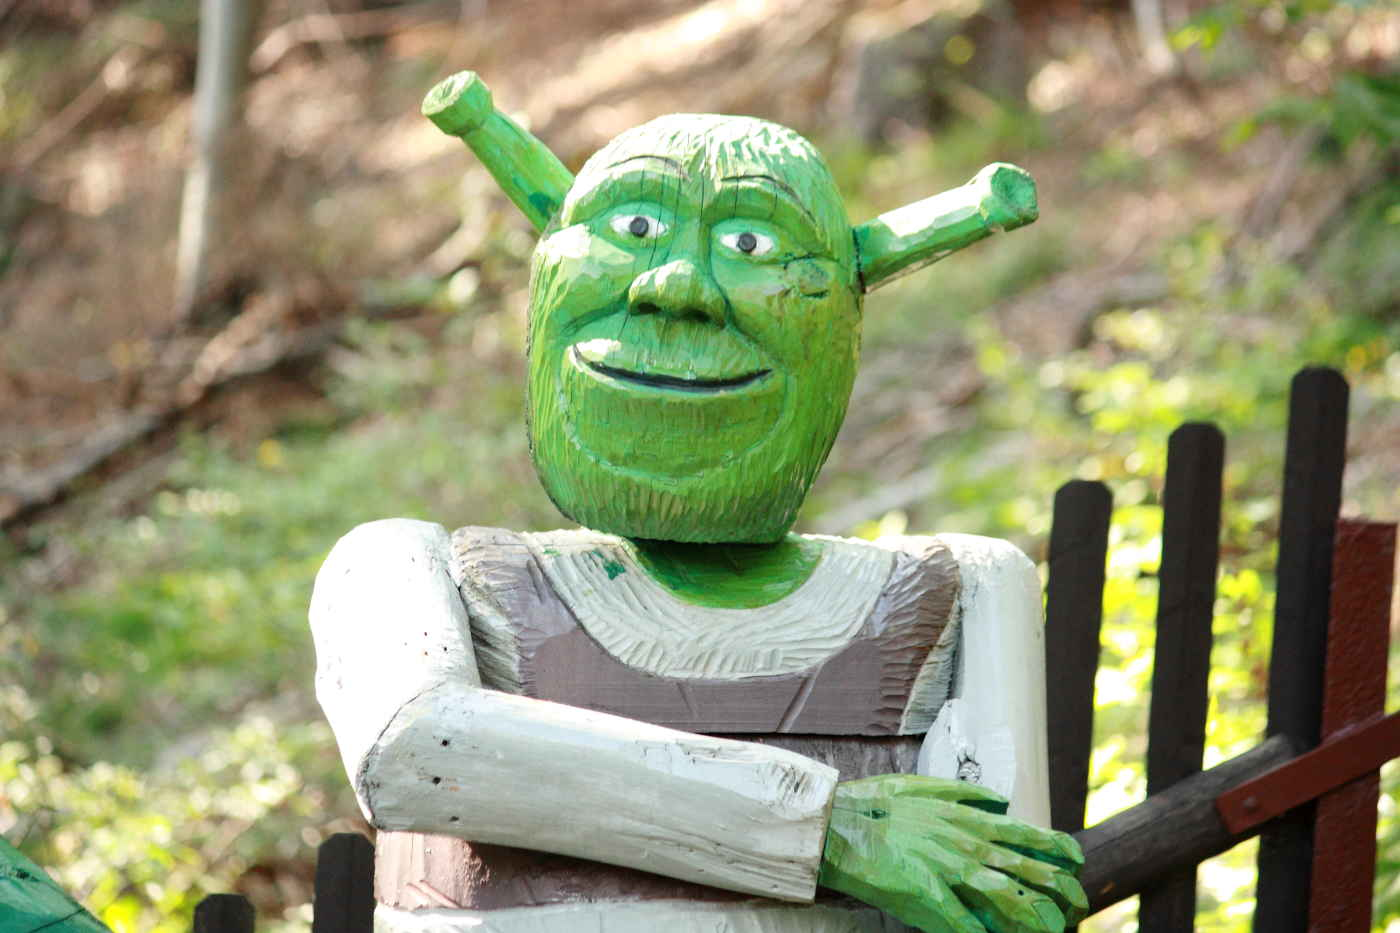 carved wooden likeness of the character Shrek